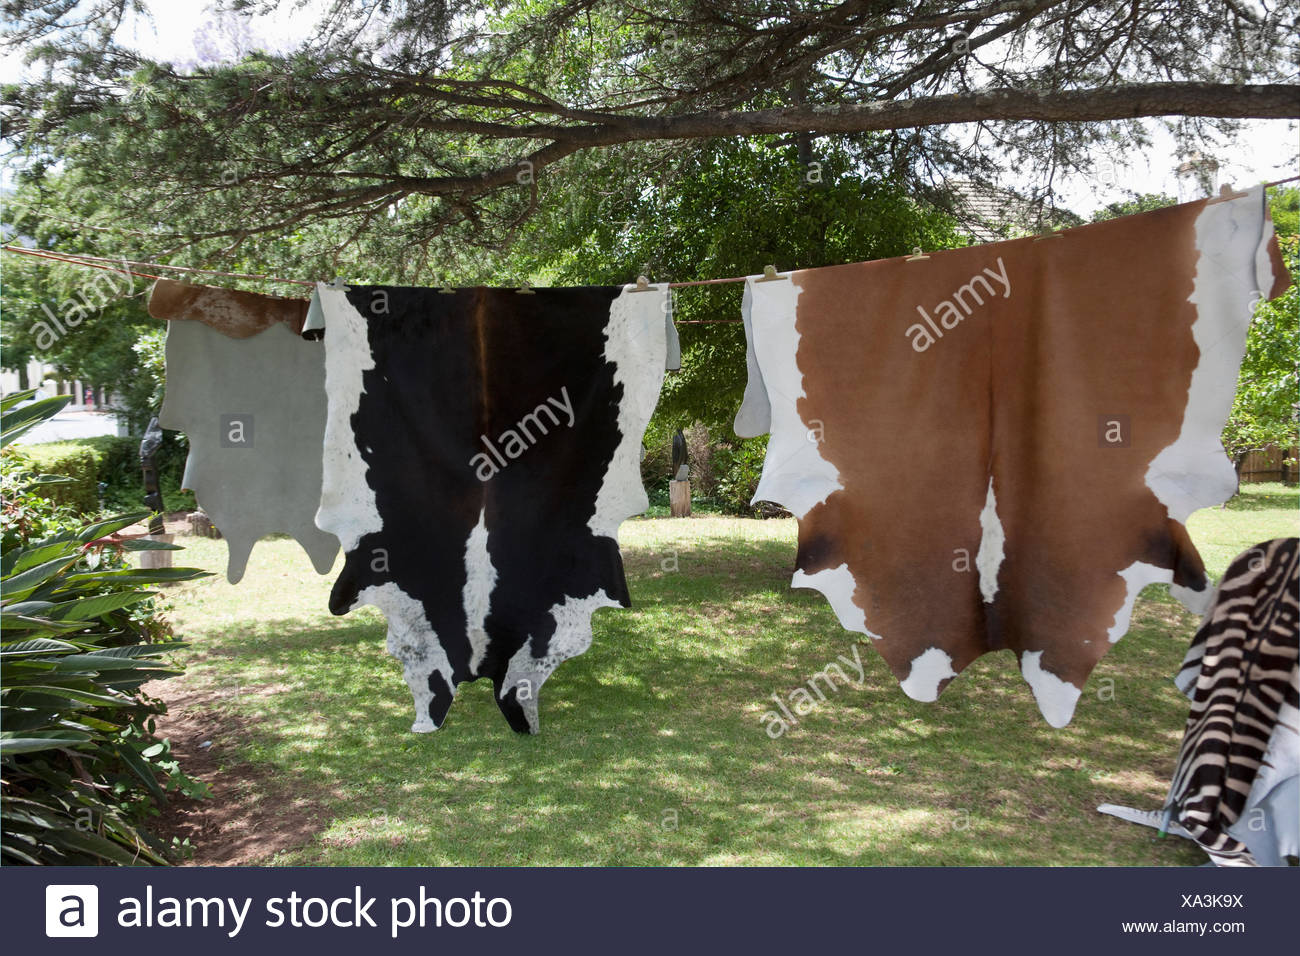 Animal skins hanging to dry, Franschhoek, South Africa - Stock Image